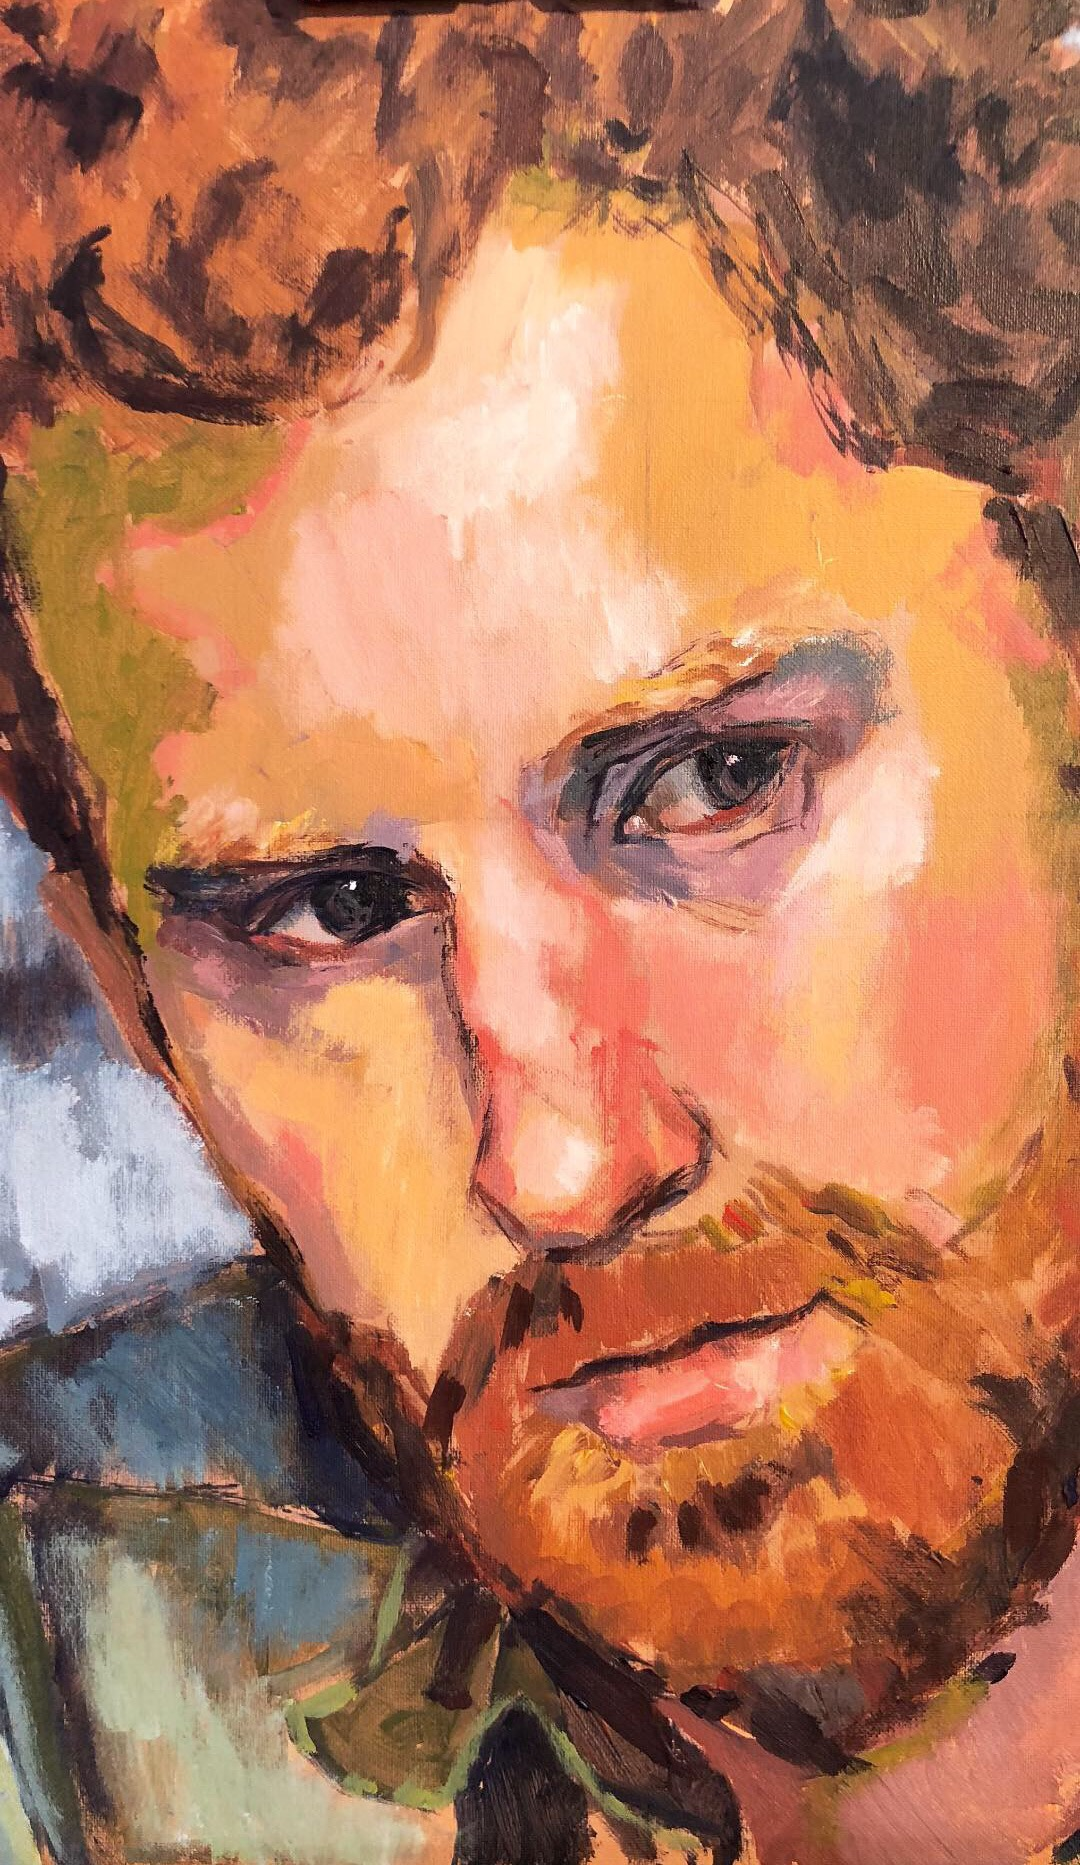 Martin Burrough Prince Harry acrylic on board 35x45cm £450.JPEG